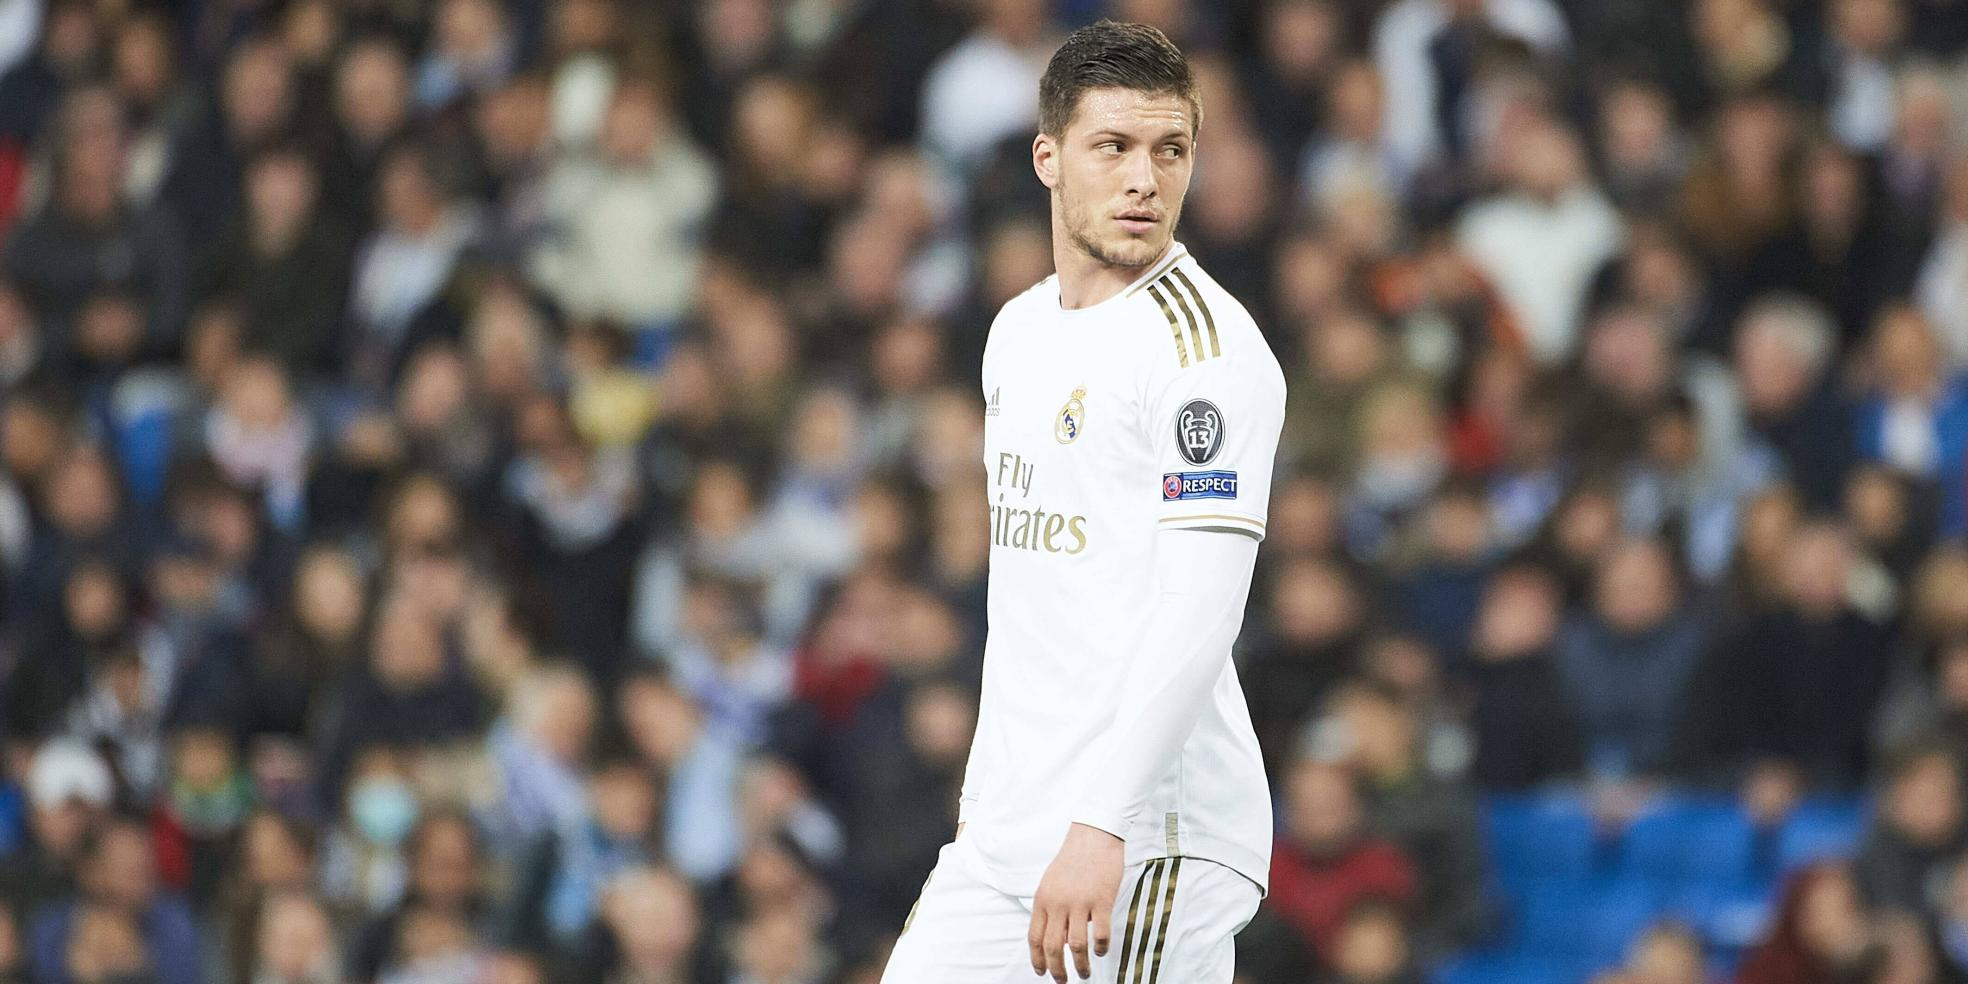 Luka Jovic von Real Madrid